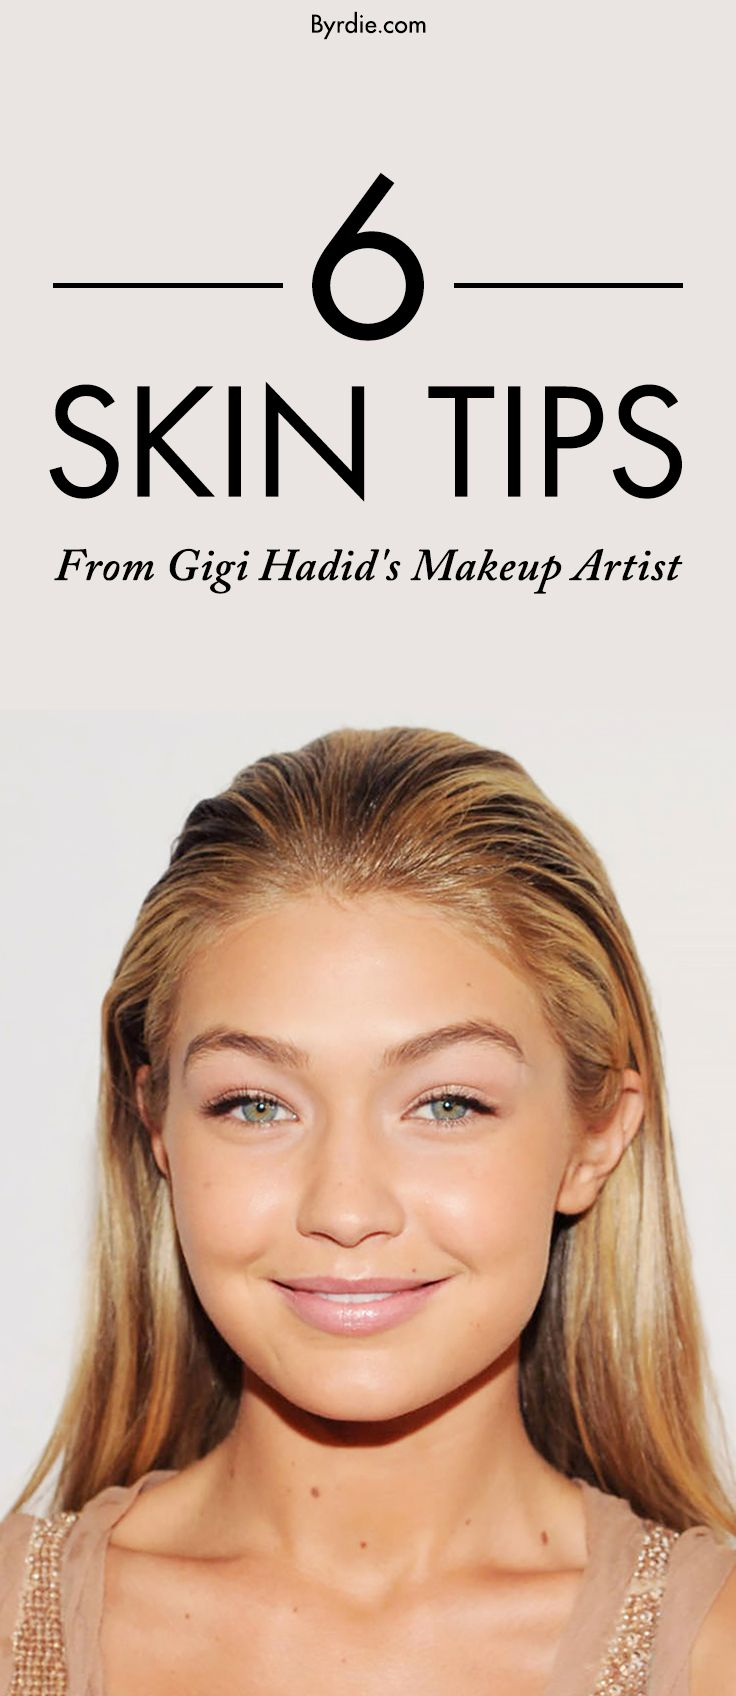 The skin tips that Gigi Hadid follows to get glowing skin